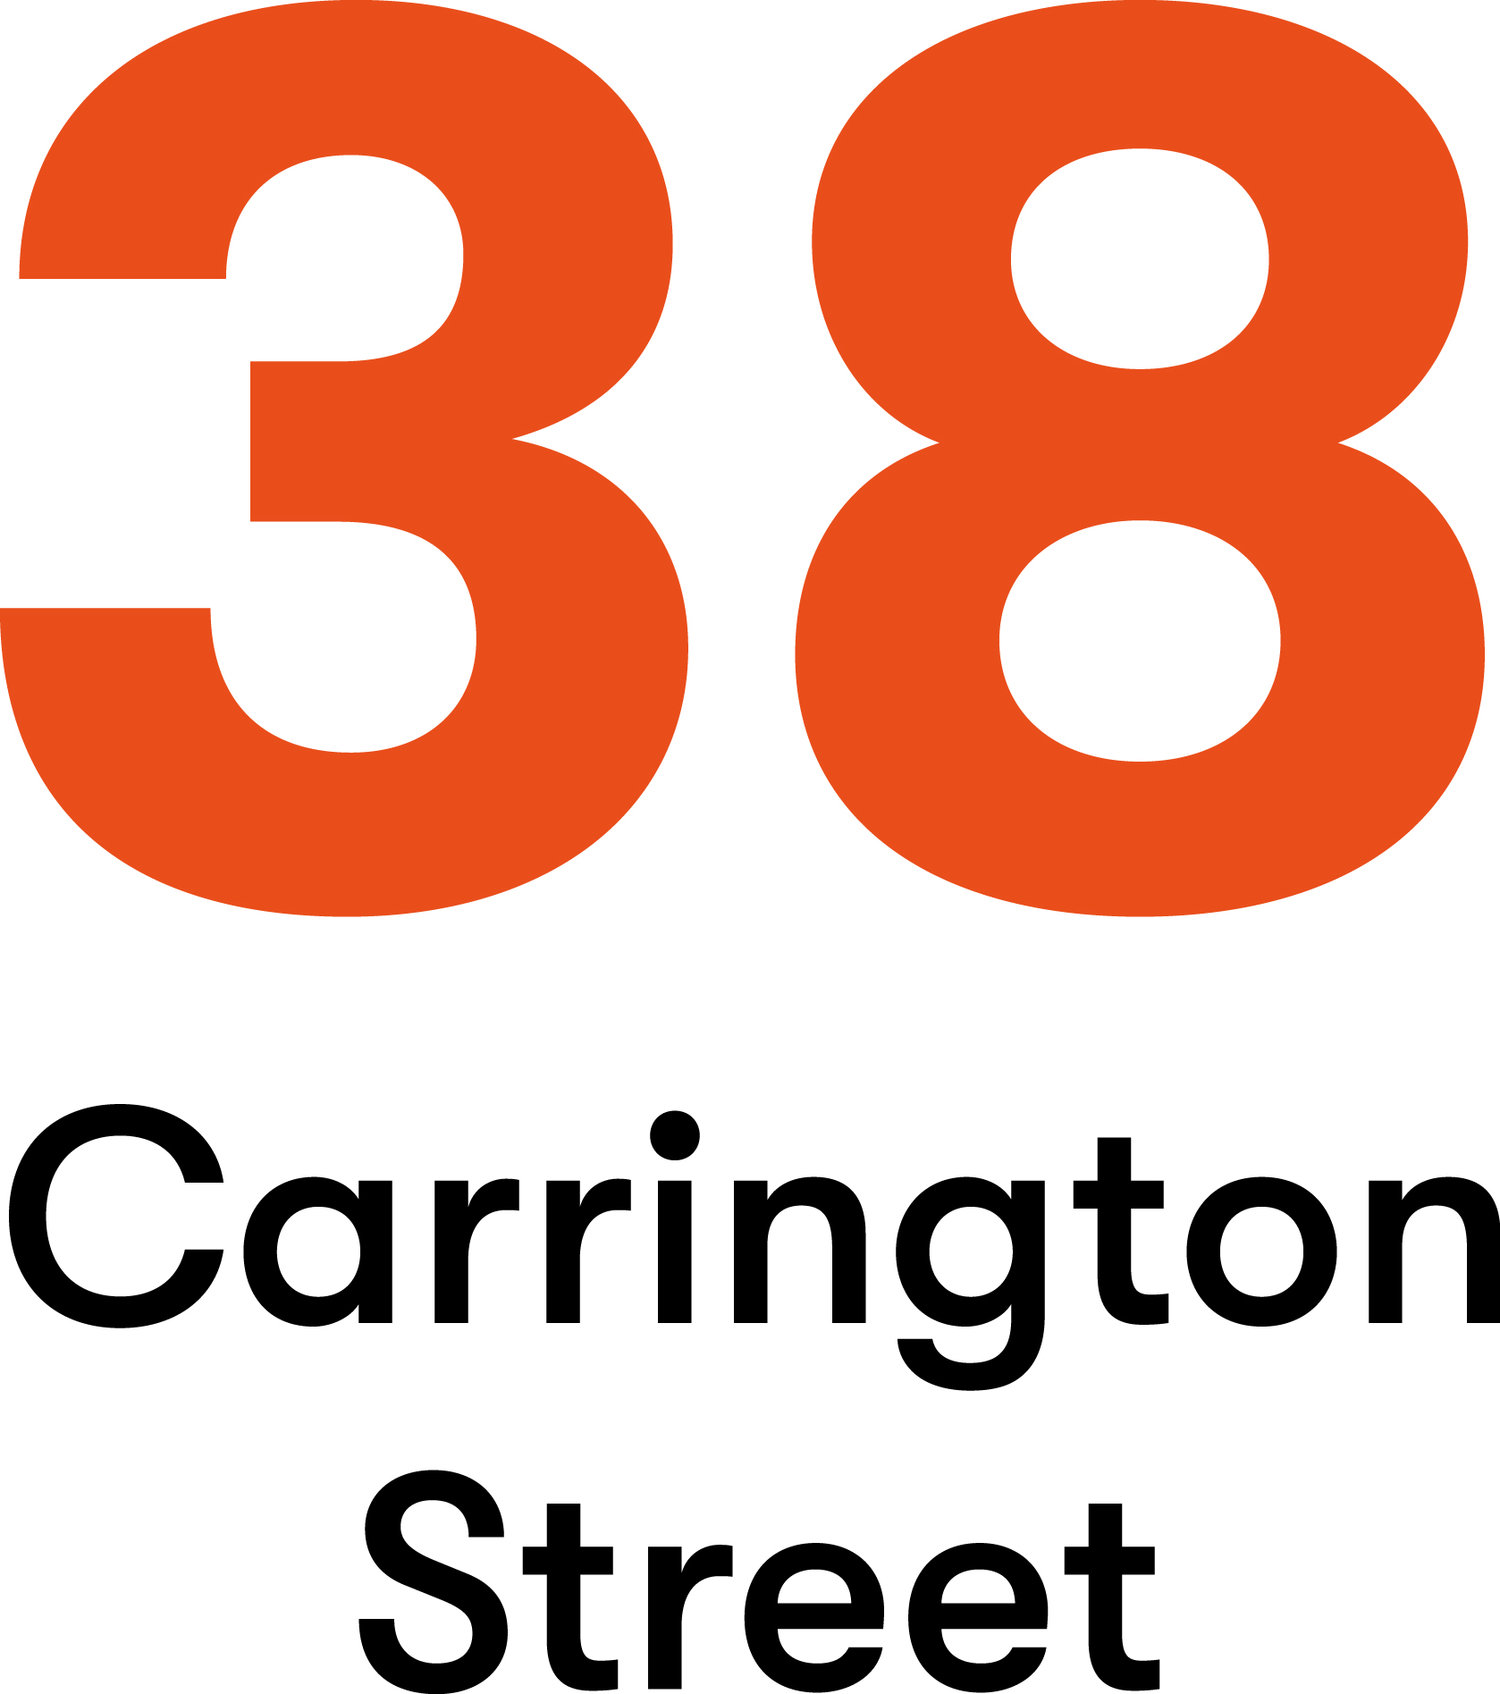 38 Carrington Street